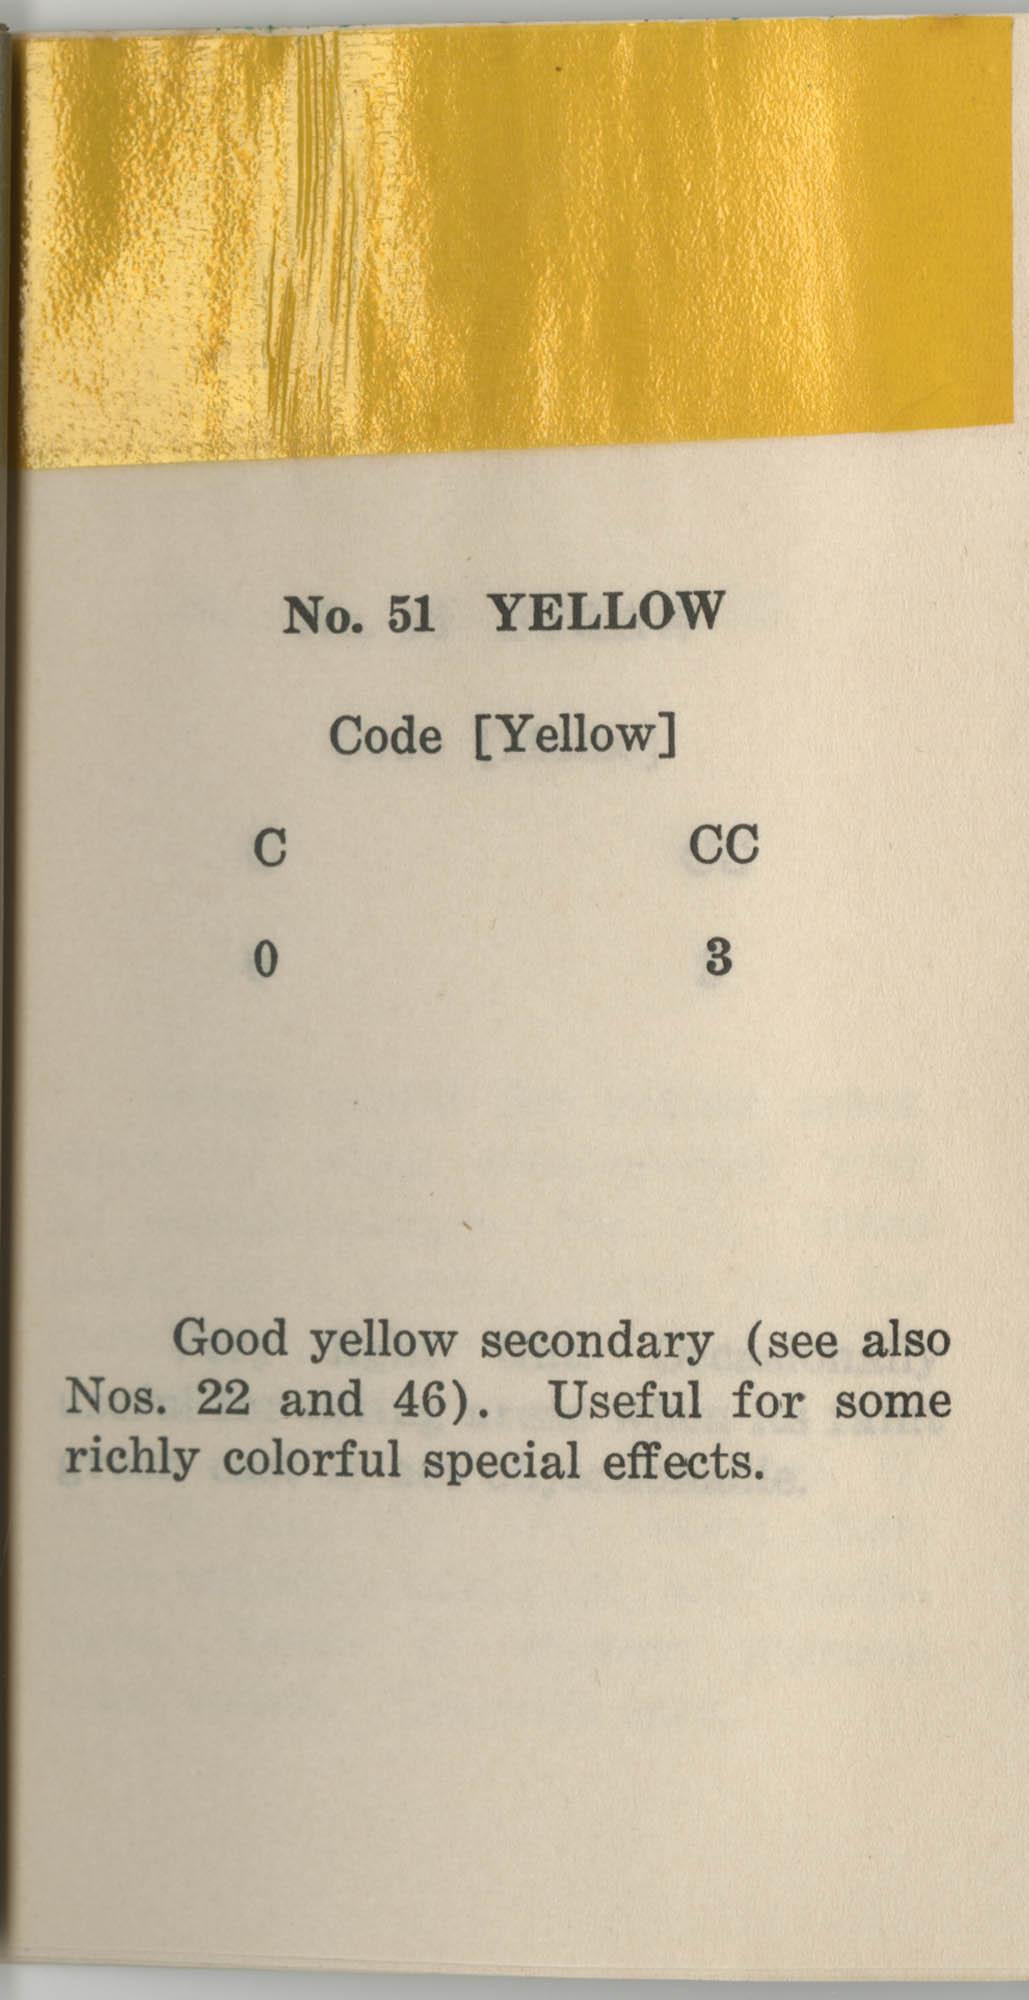 Colored Gelatine for the Theatre School and Community Playhouse, Page 21